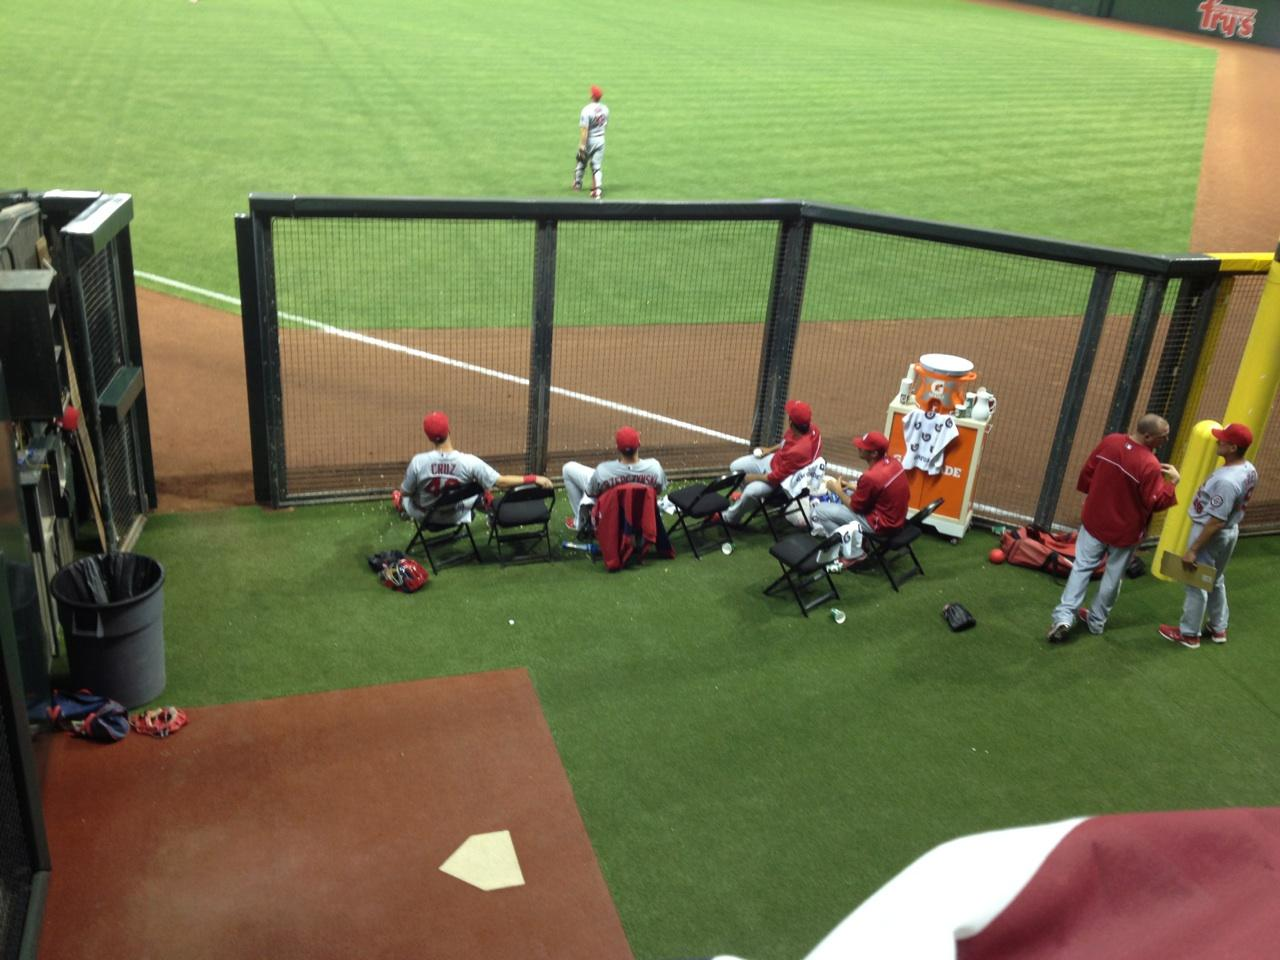 Chase Field Section 108 Row 25 Seat 11